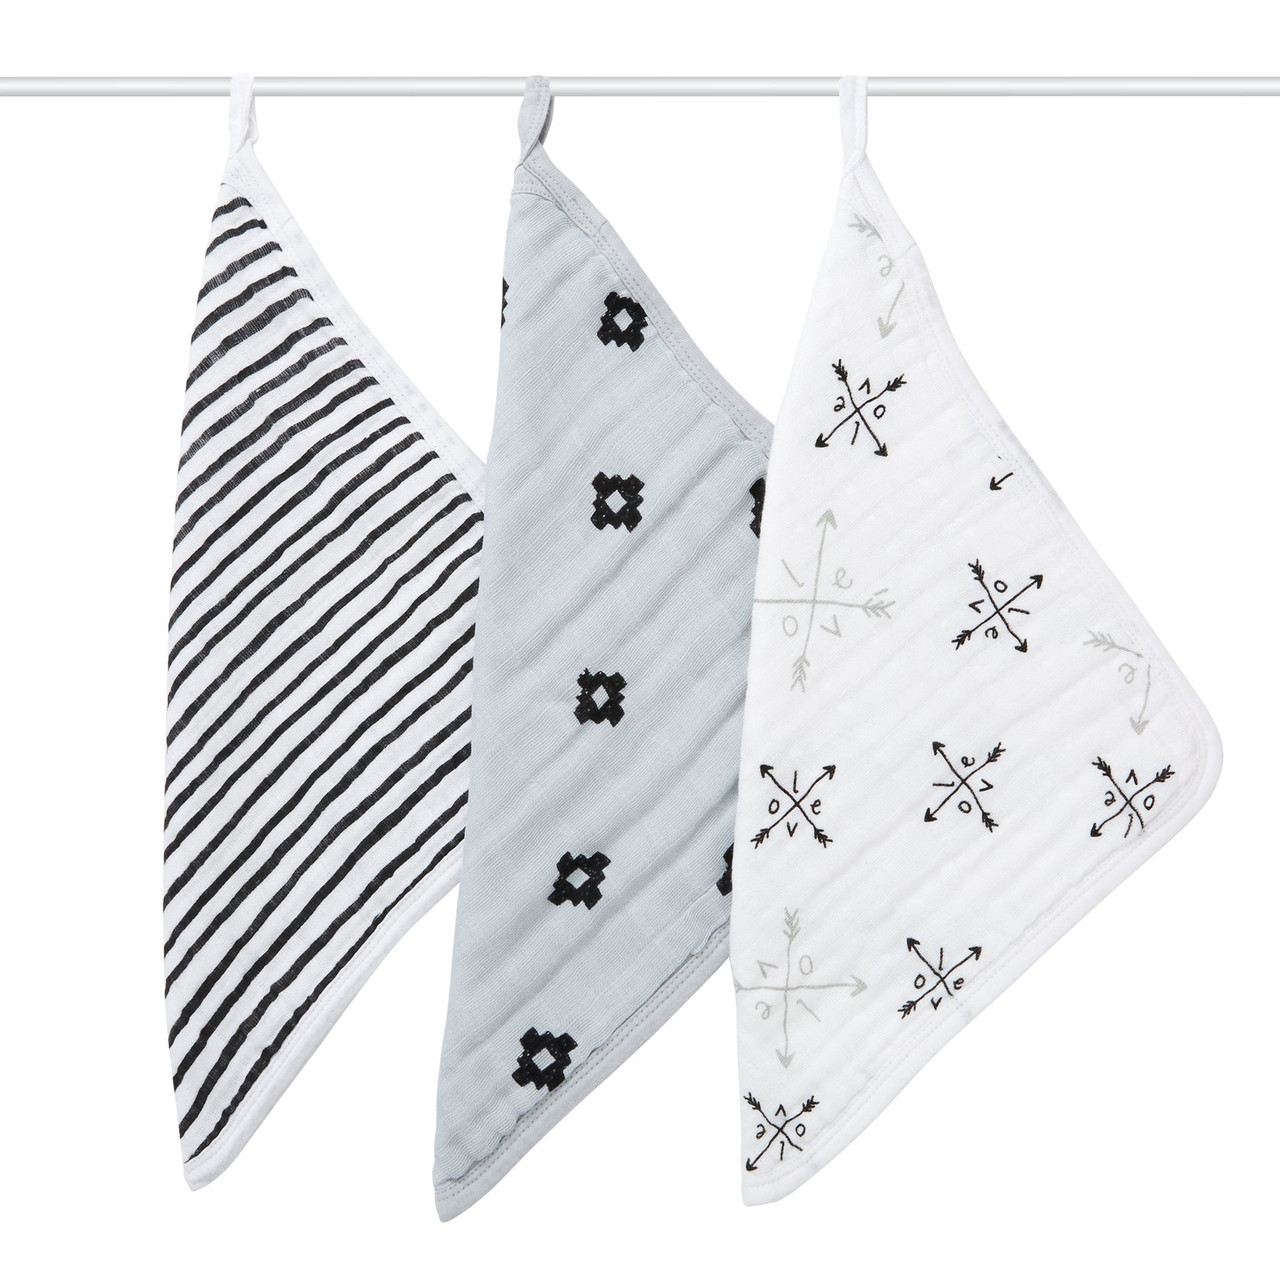 Aden + Anais Cotton Muslin Washcloth Set 3 Pack at Baby Barn Discounts The Aden + Anais Lovestruck Washcloths are made of soft cotton muslin. Designed to be gentle on sensitive newborn skin, they're a great addition at bathtime.